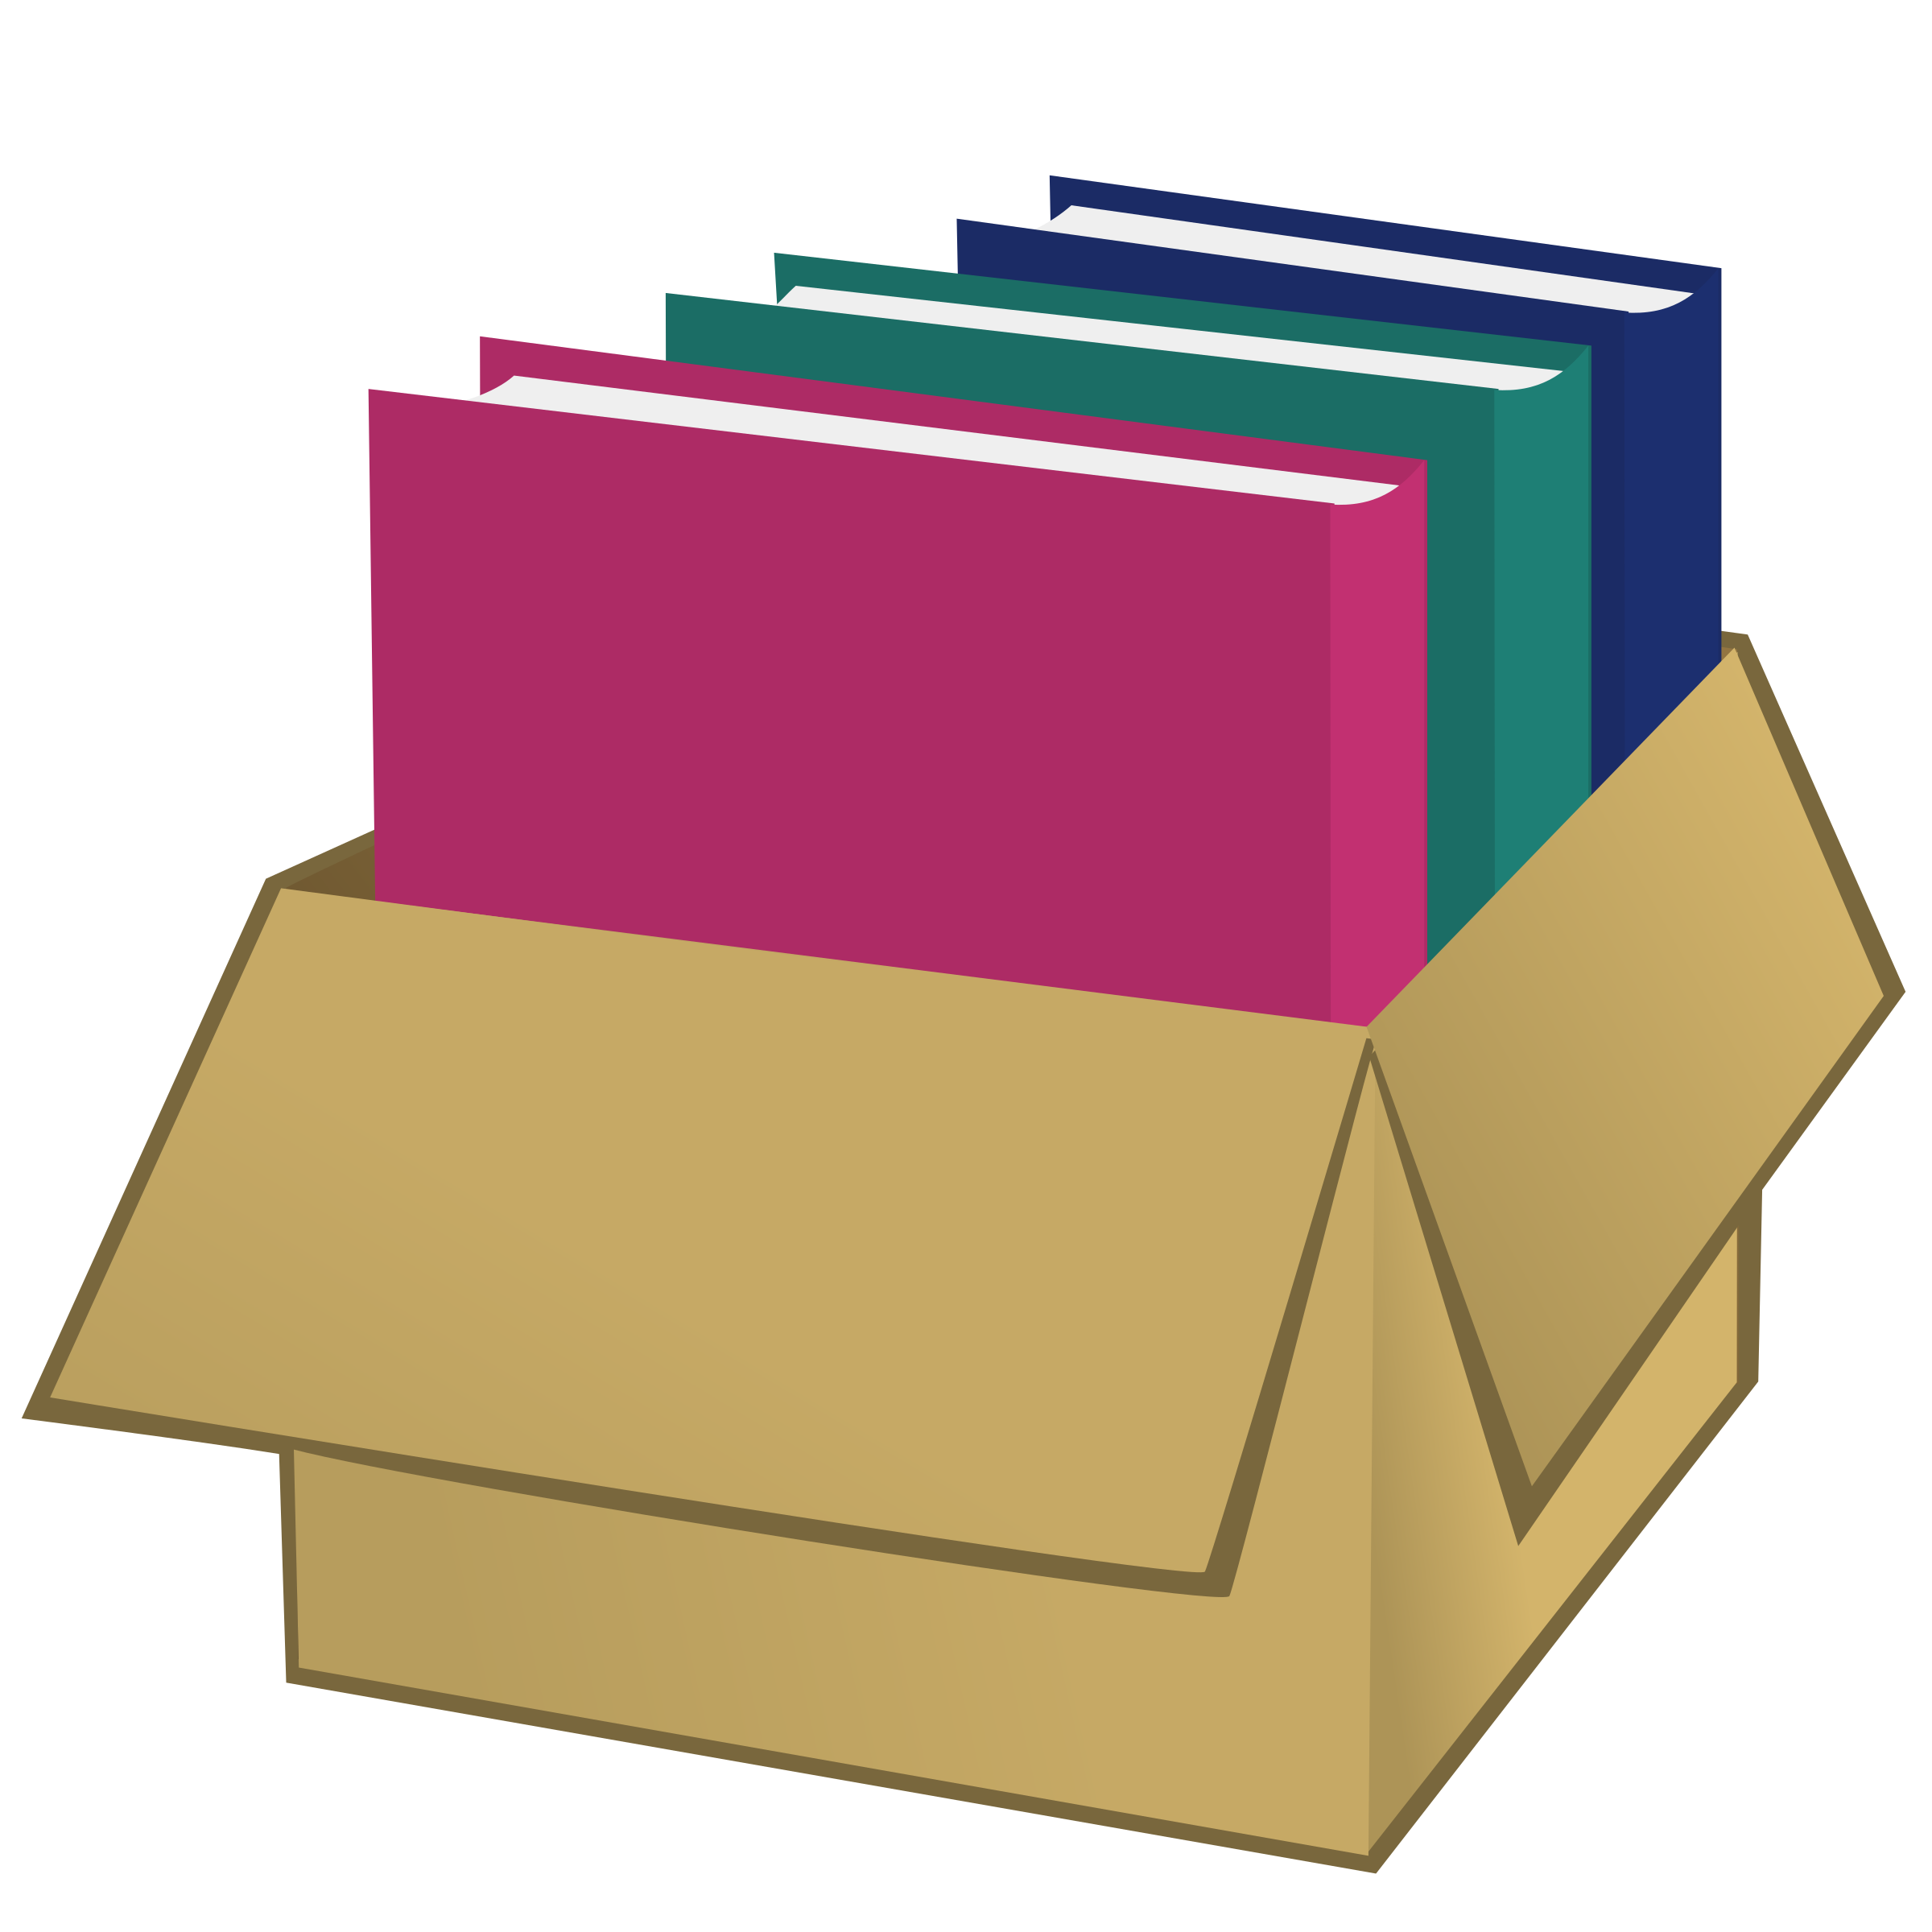 Box with folders by nicubunu